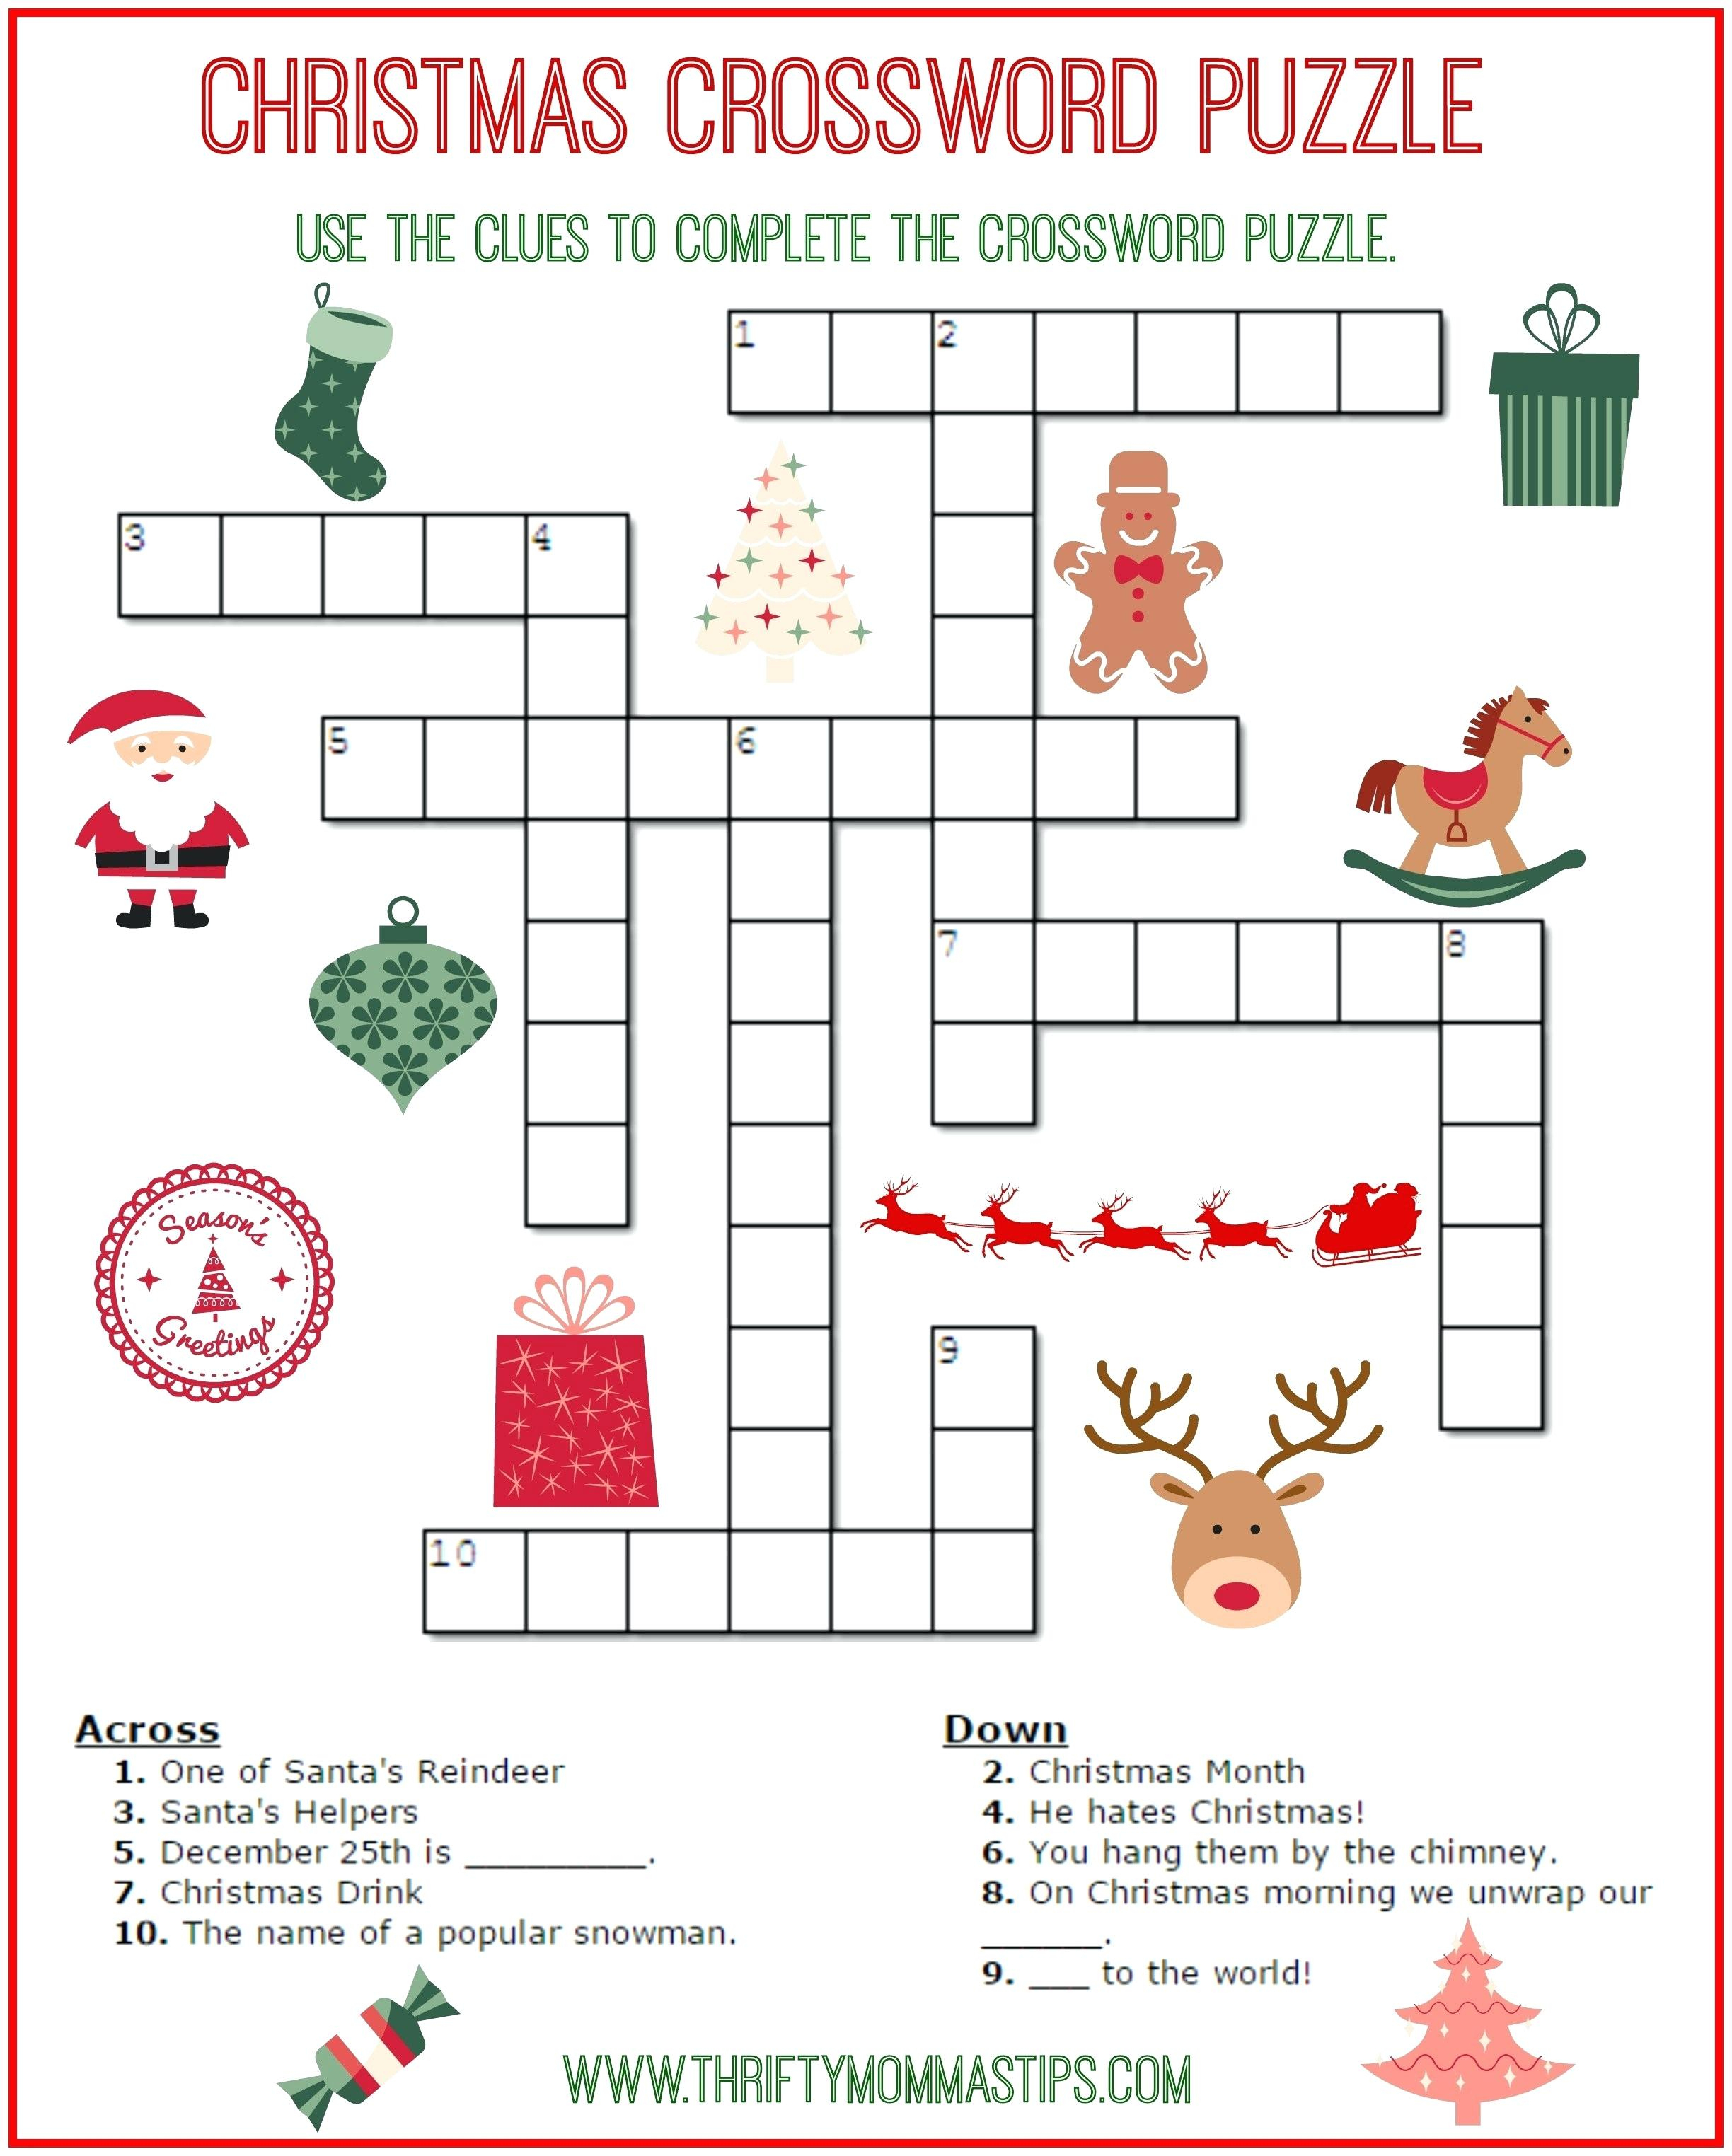 Free Printable Crossword Puzzles For Kids State Capitals Crossword - Printable Crossword Puzzles For Grade 1